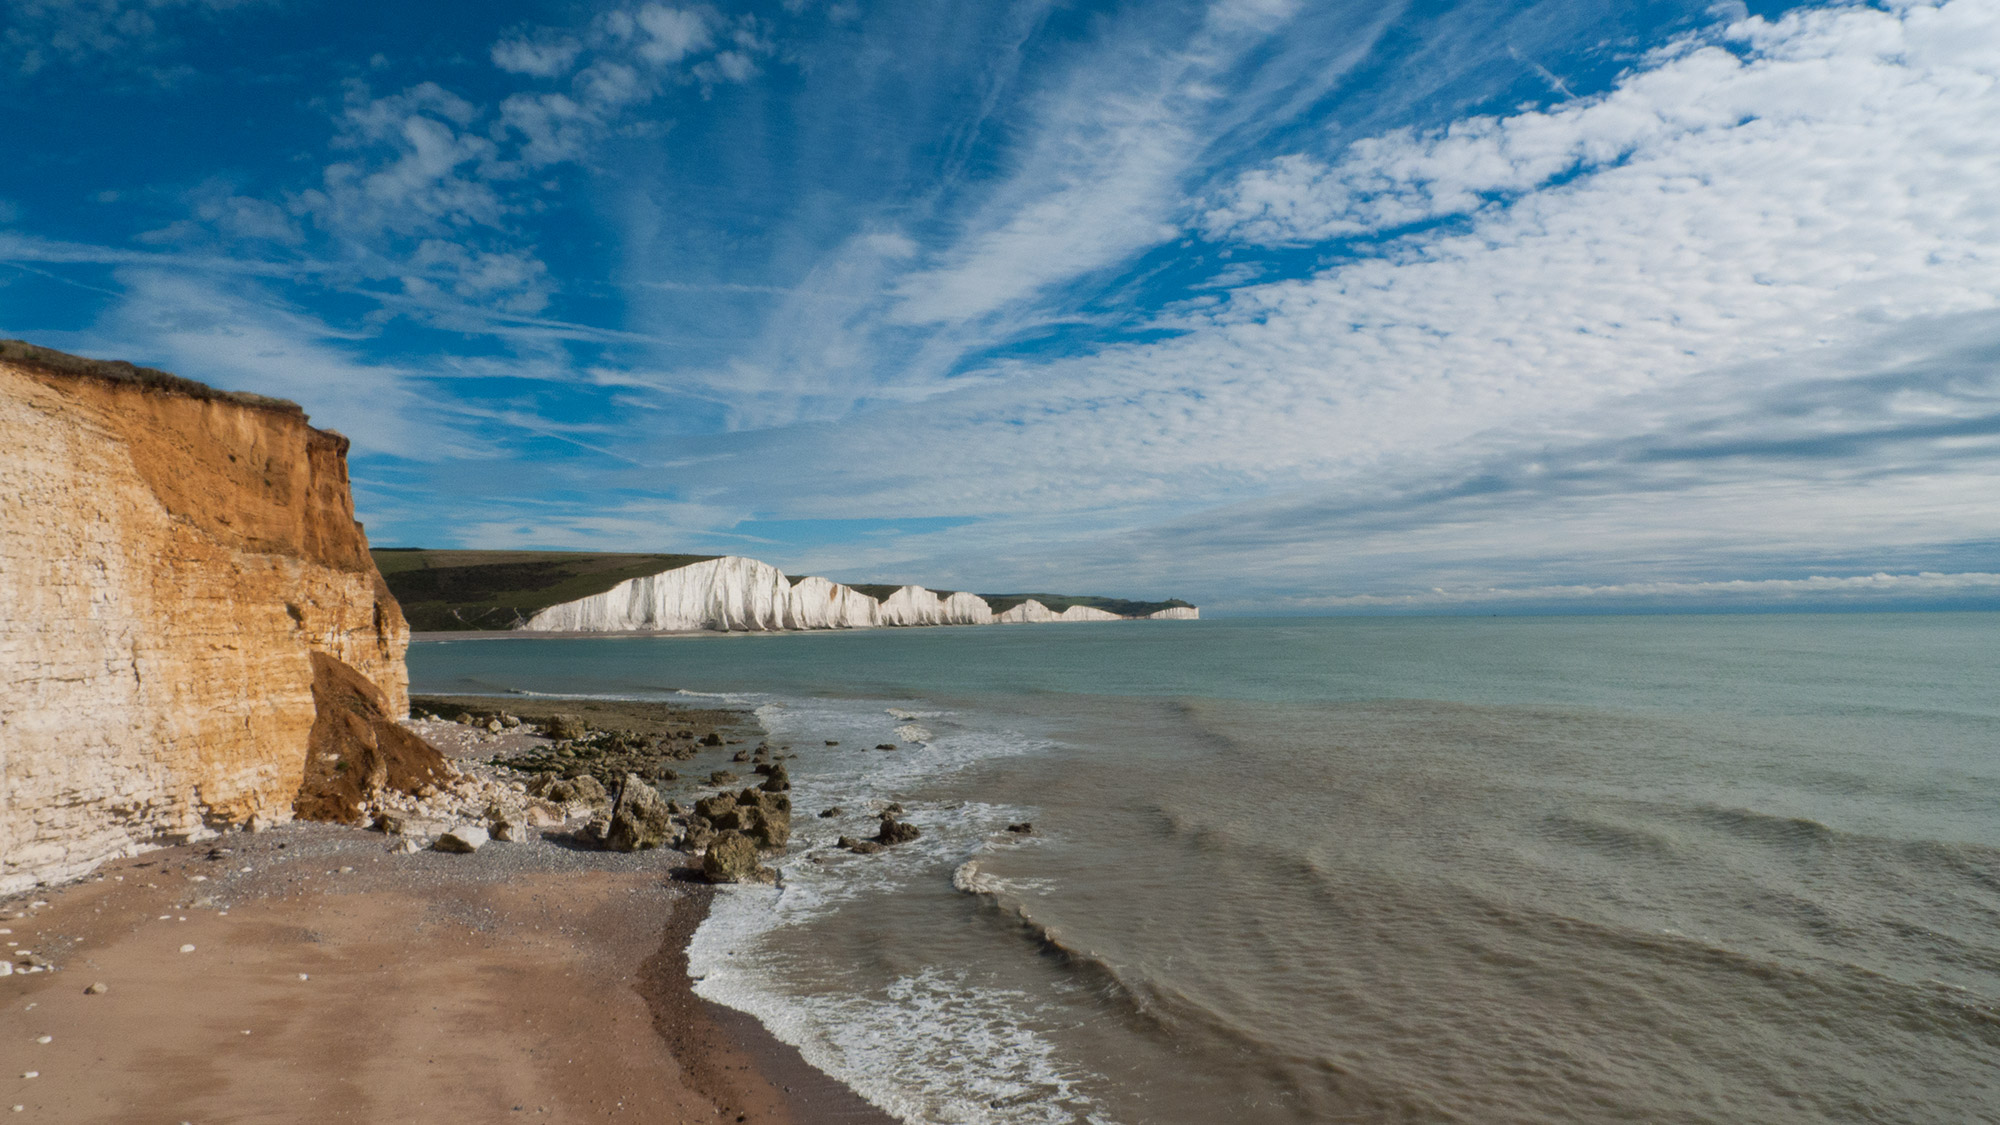 Seaford by Jan Littlewood